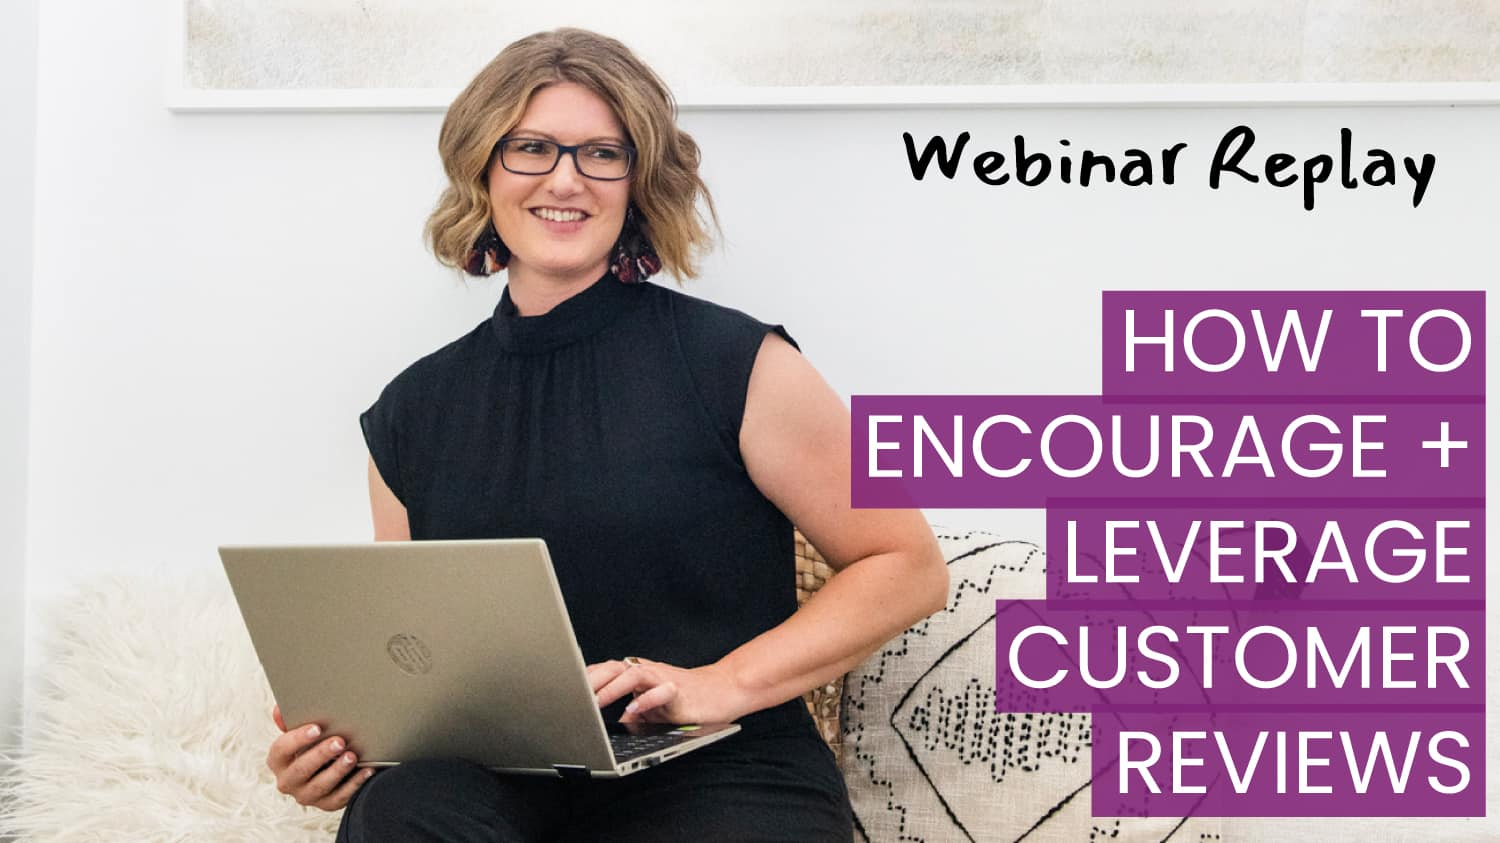 Webinar Replay | How To Encourage + Leverage Customer Reviews